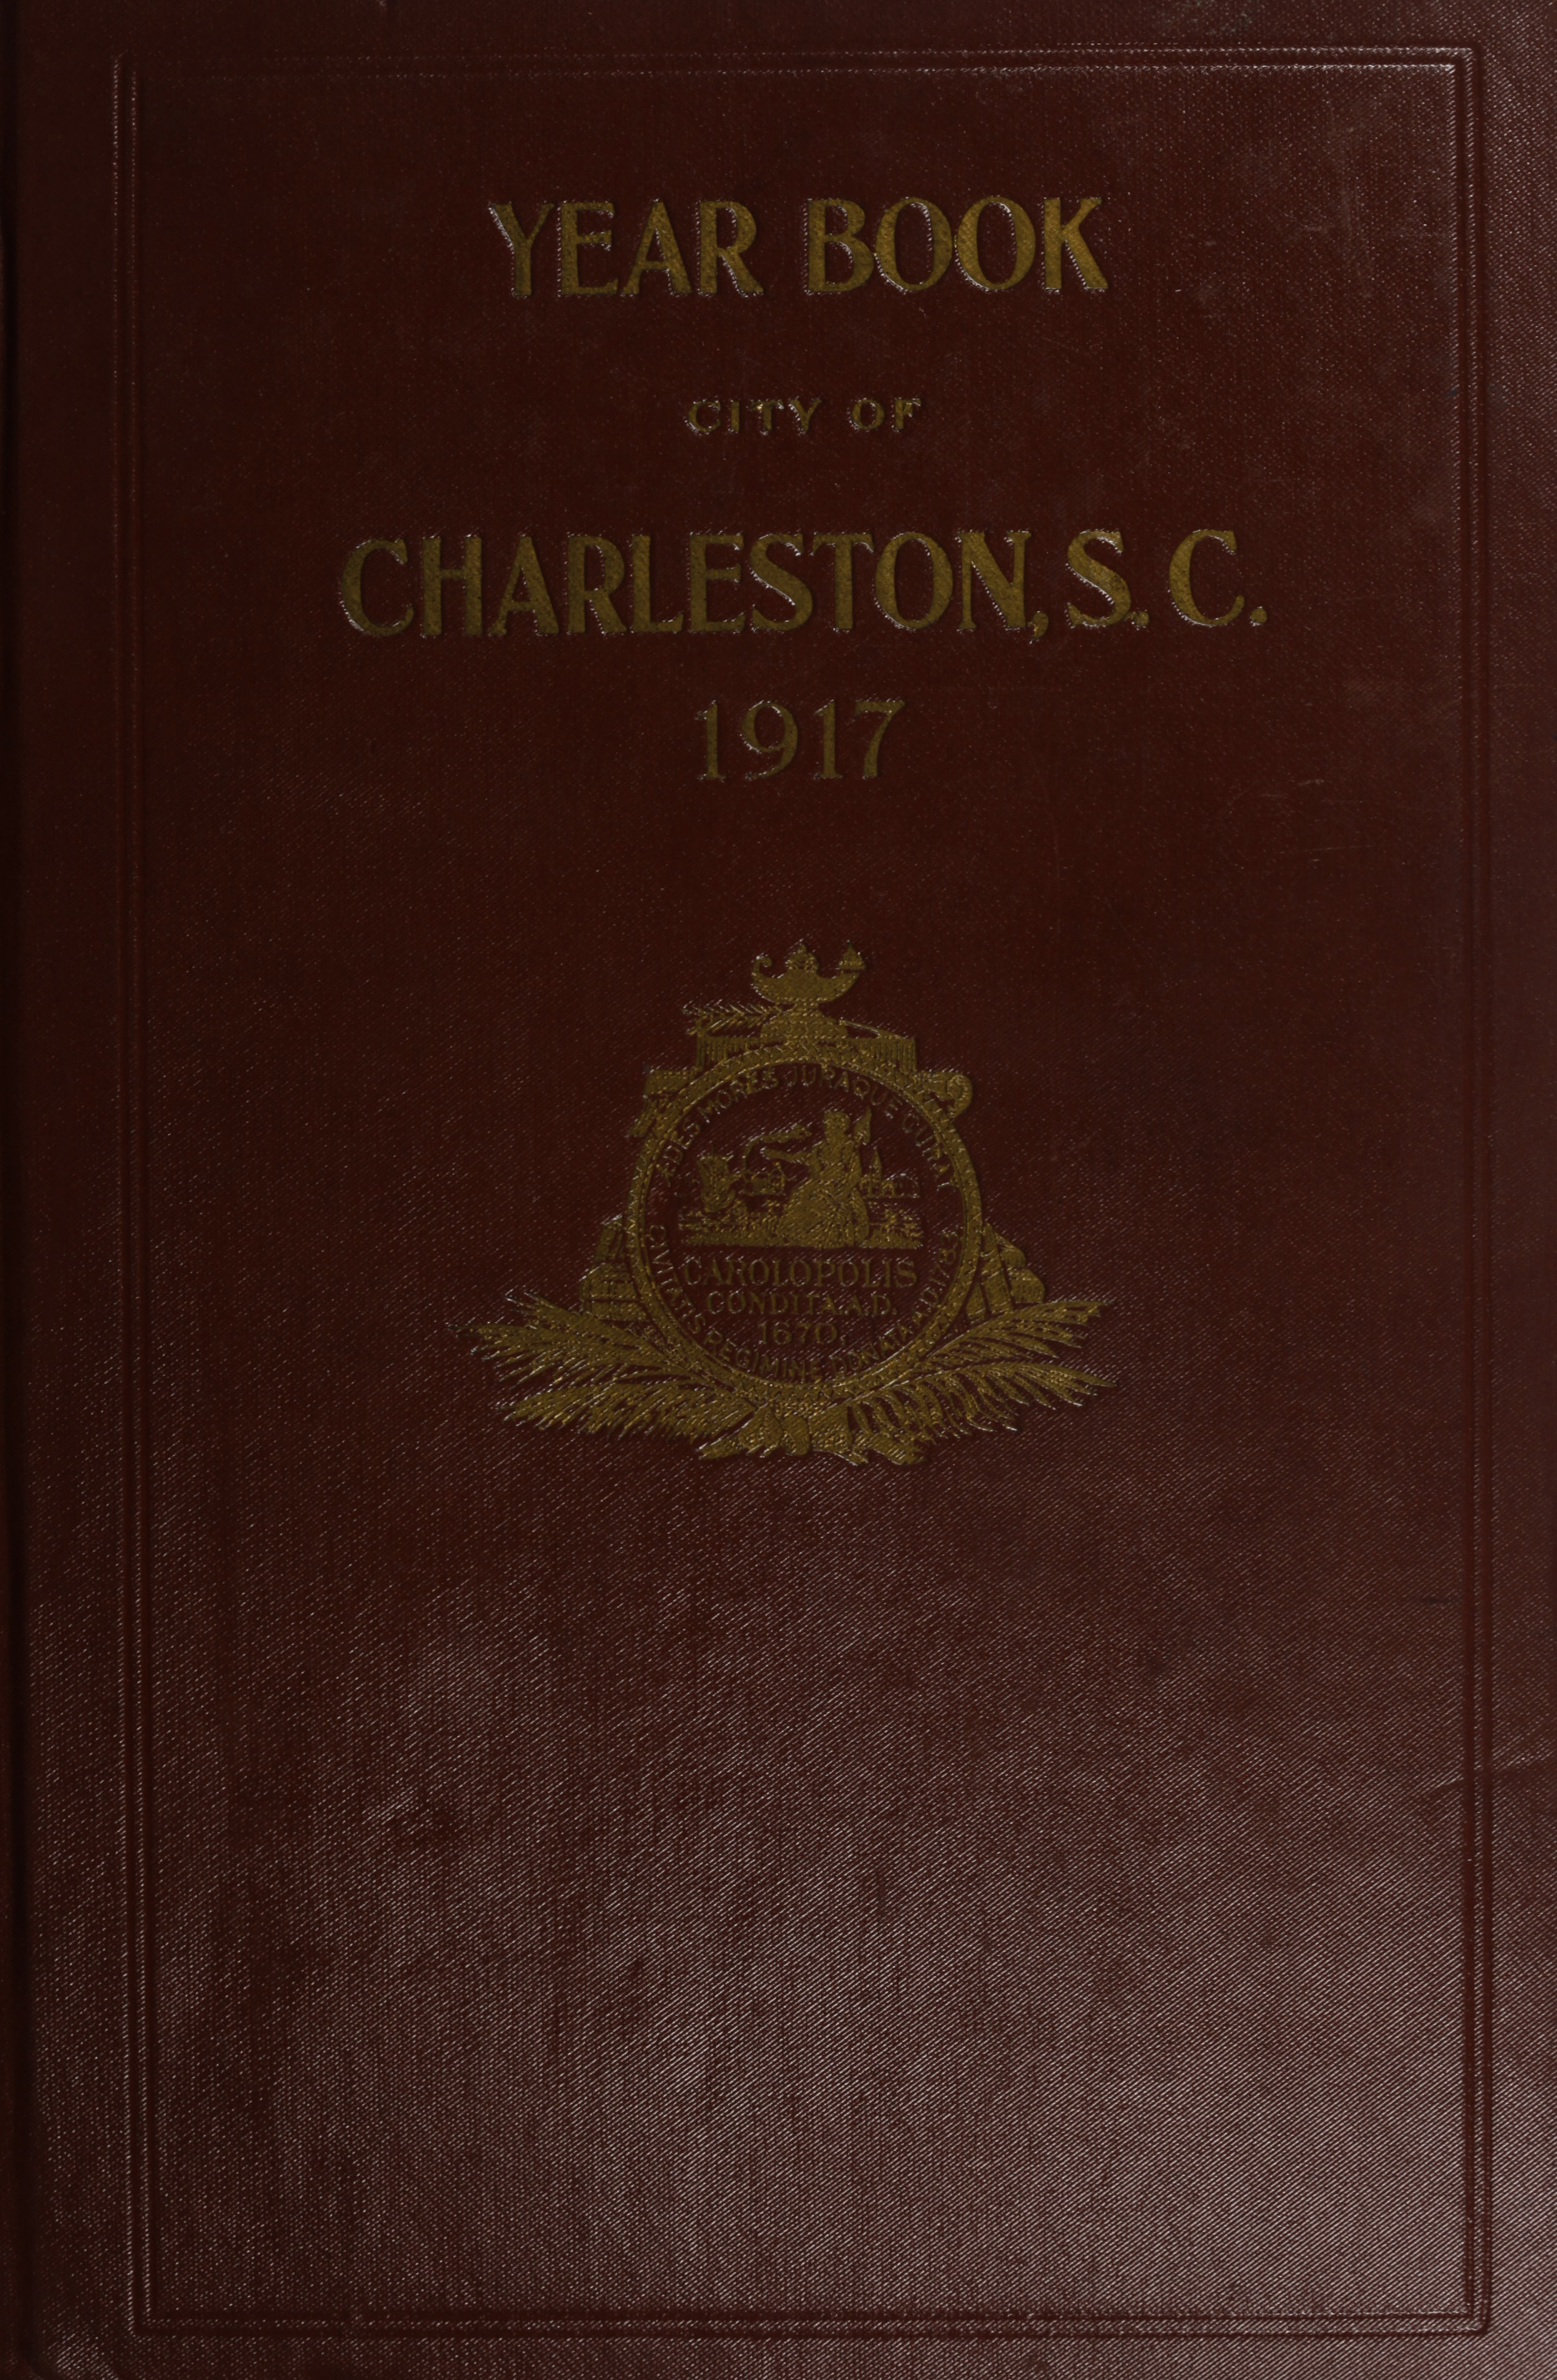 Charleston Yearbook, 1917, cover